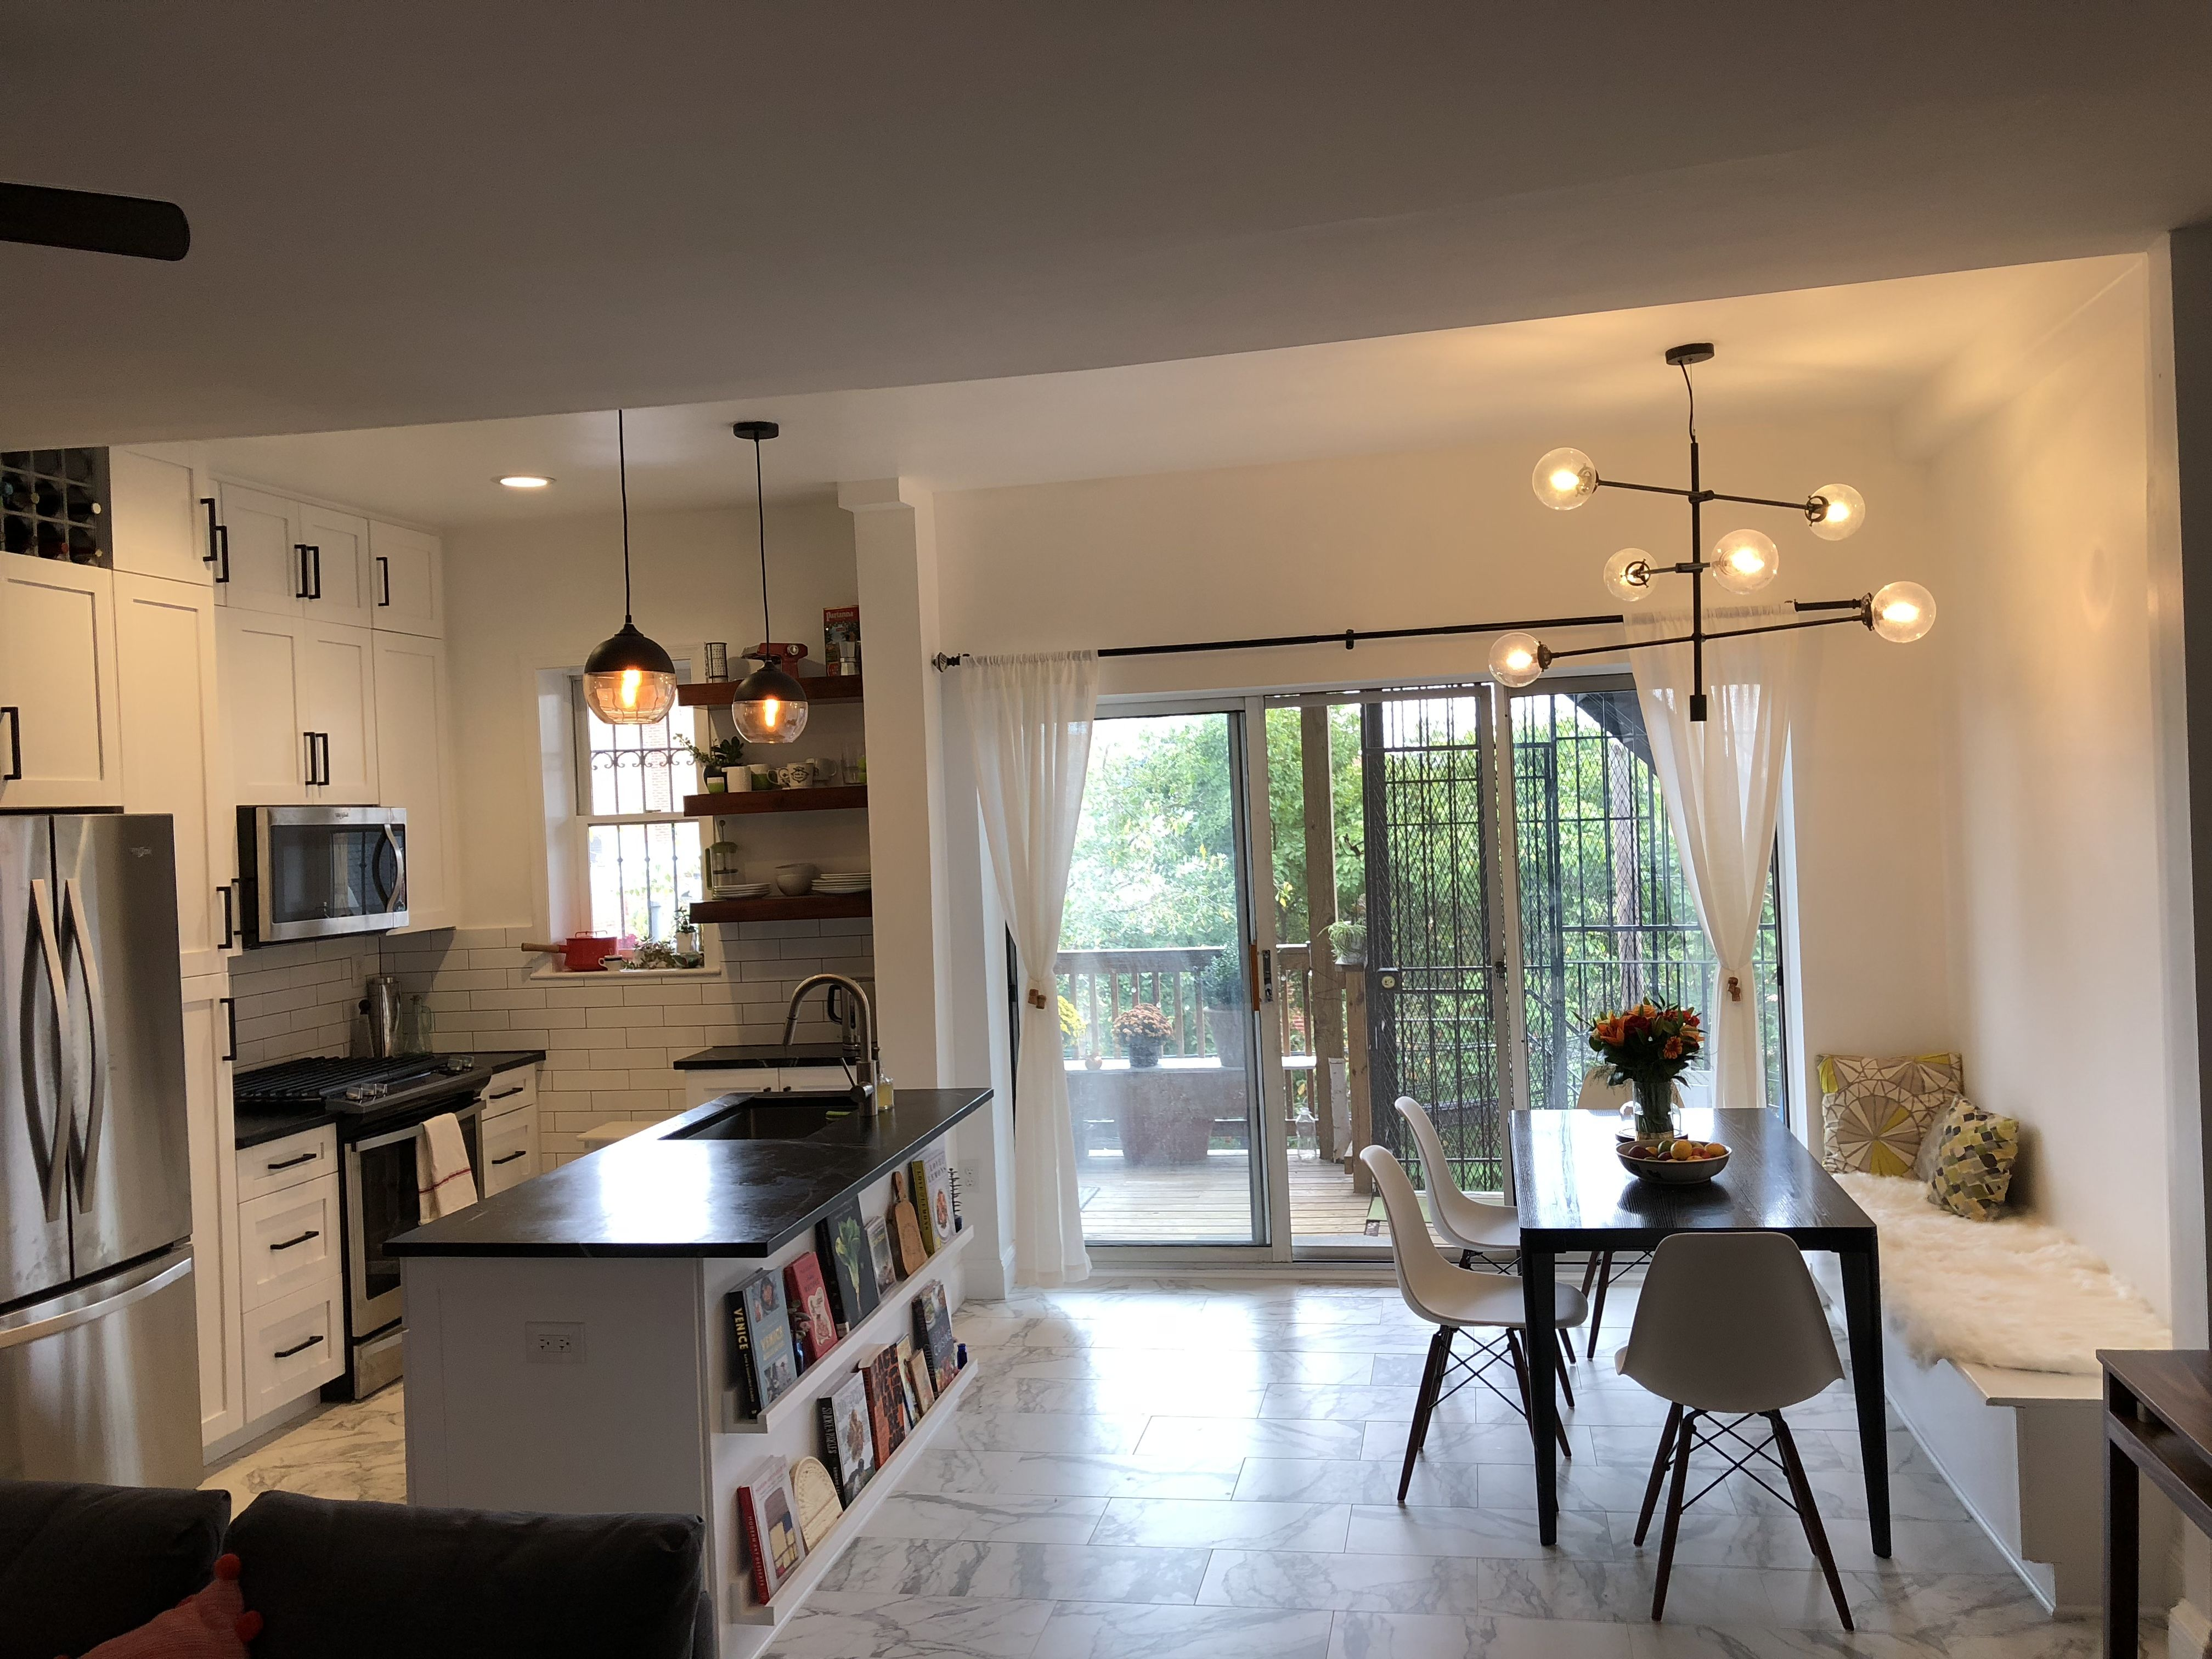 My kitchen renovation design  amazing to see something go from my ...